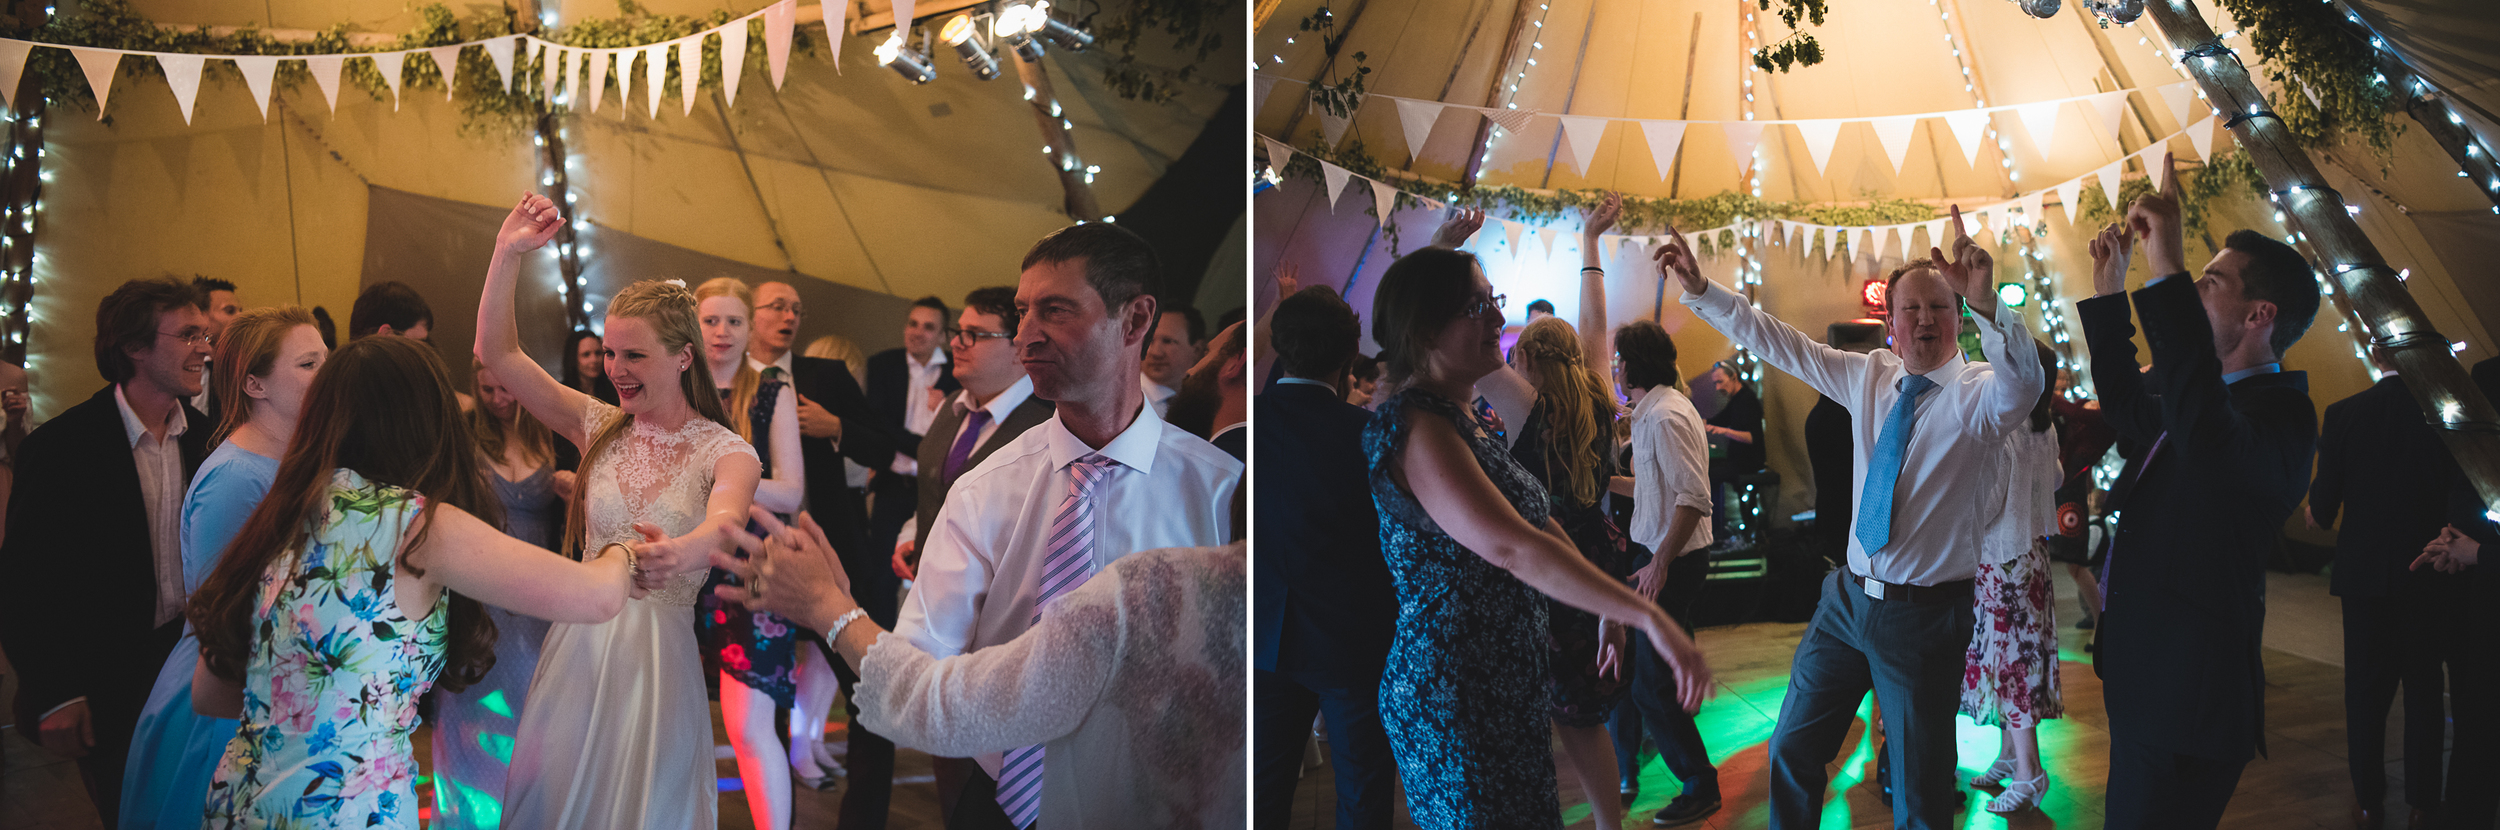 guests dancing at a tipi wedding in uk